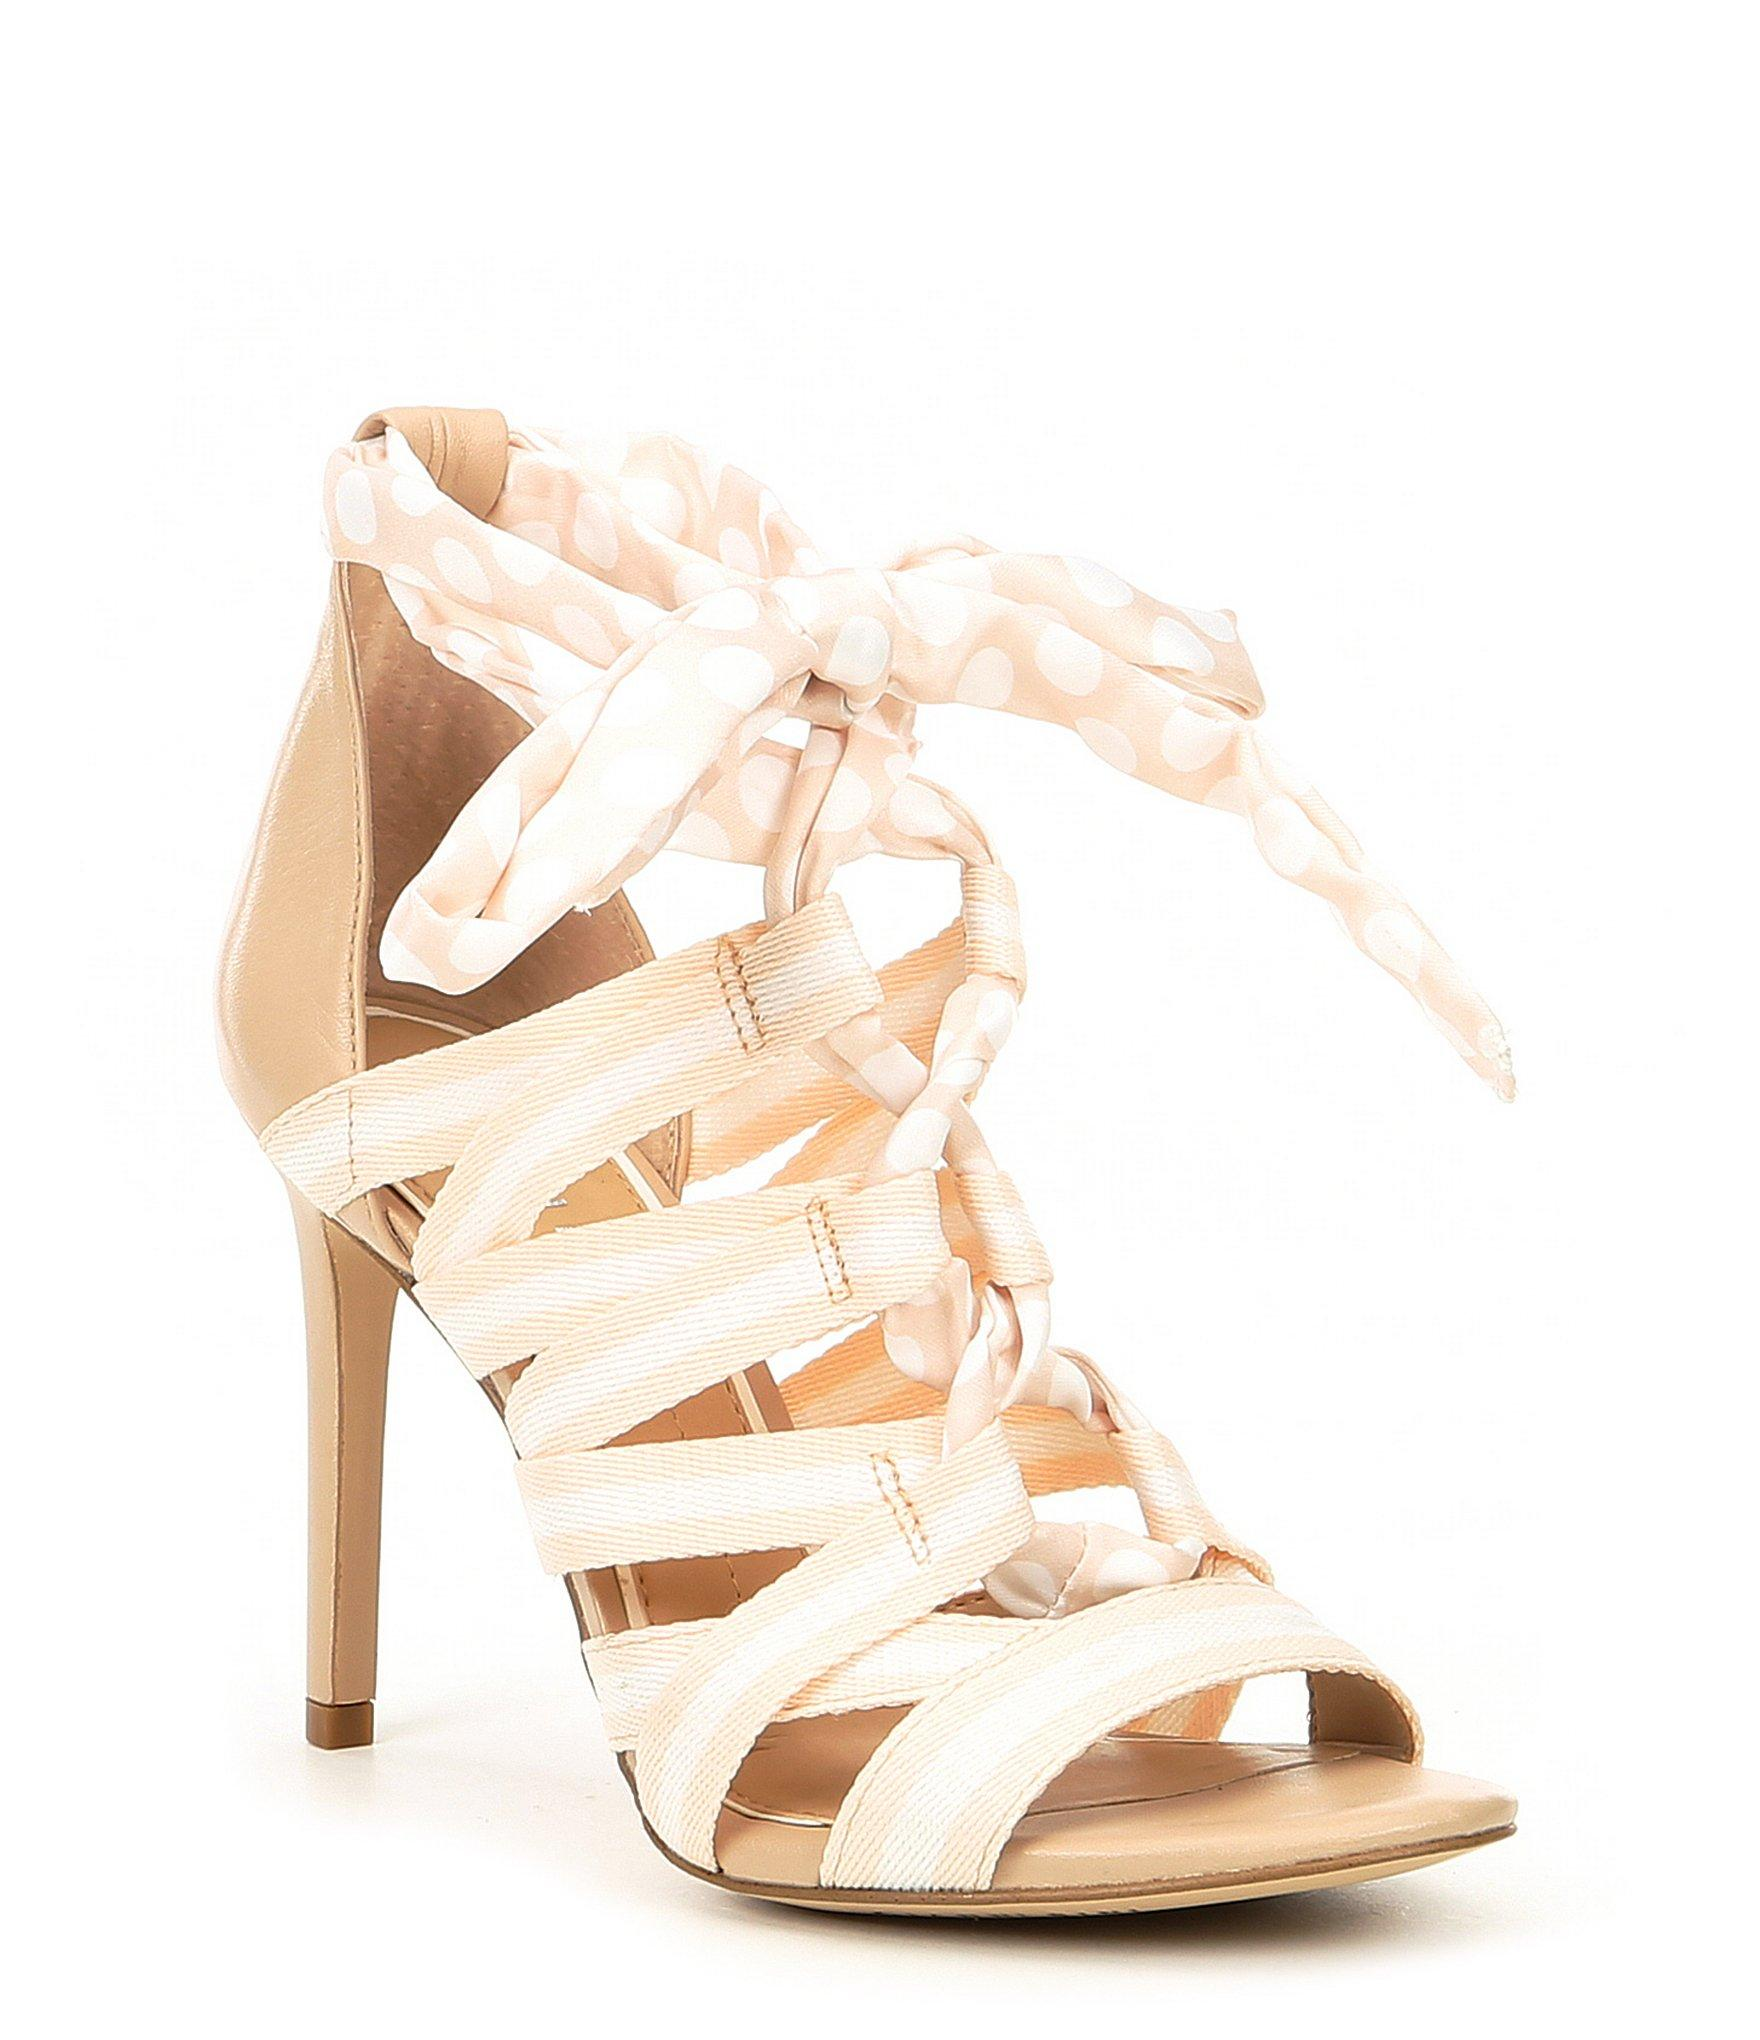 8fb717312e Gianni Bini Abrianna Printed Lace-up Dress Sandals in Natural - Lyst